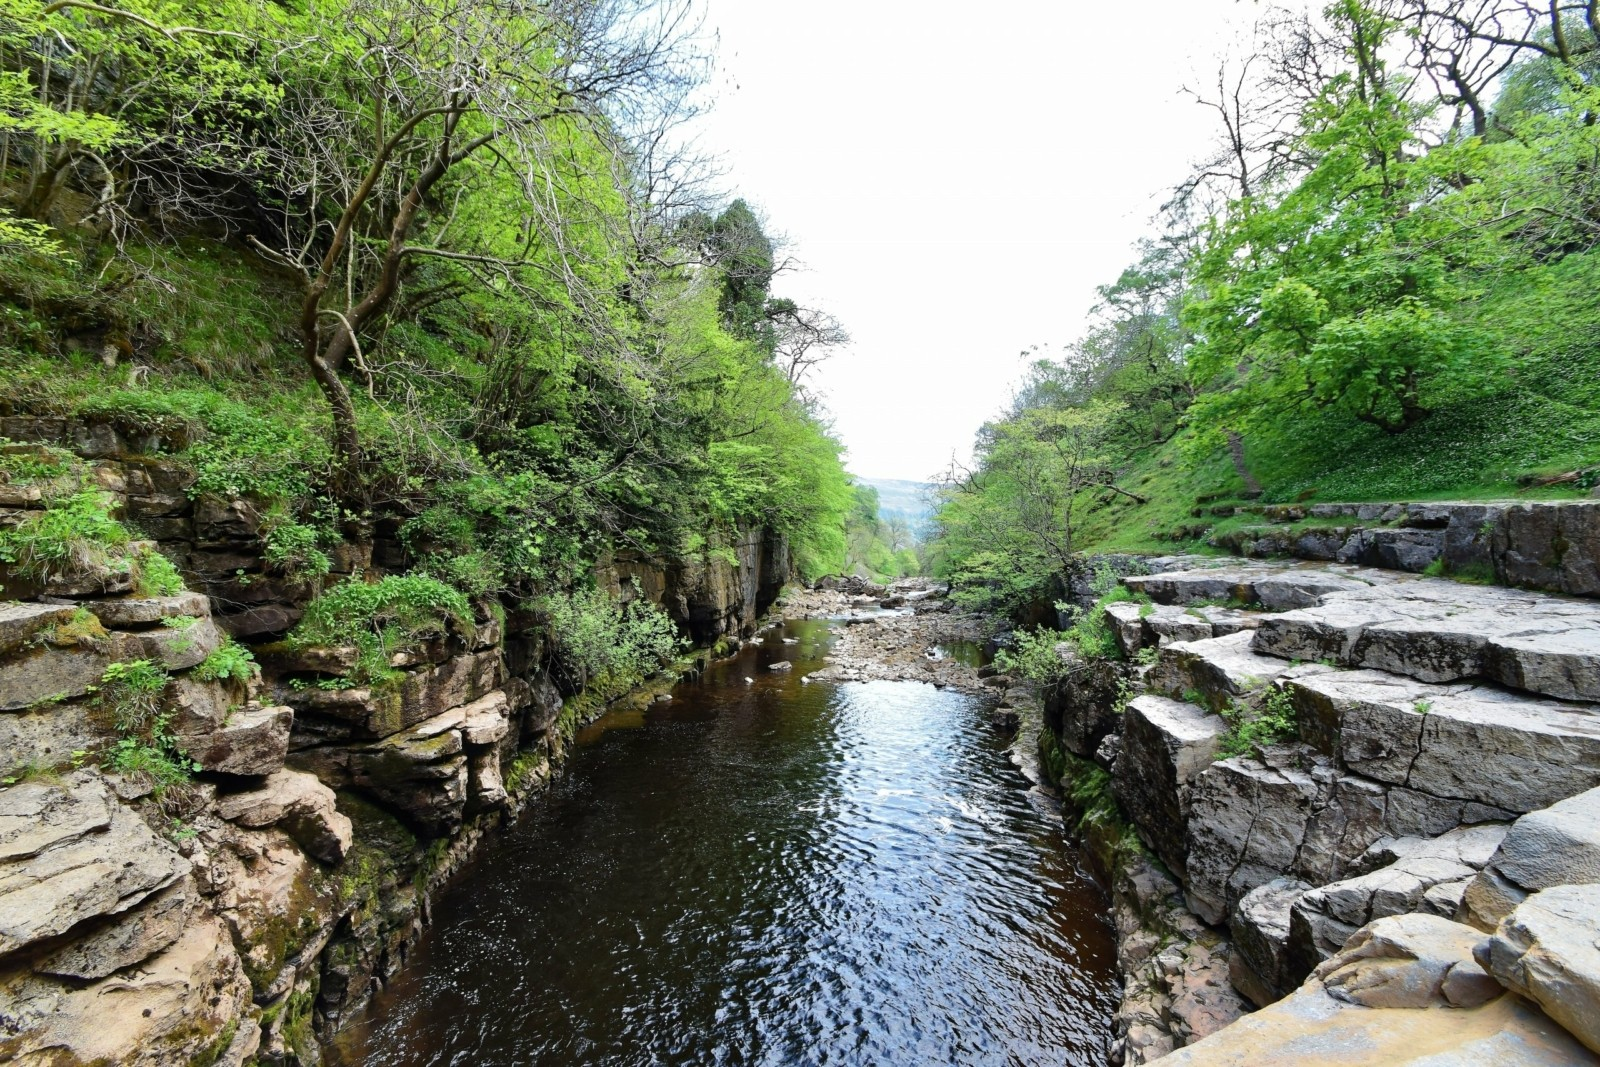 A gorge on the River Swale, Yorkshire Dales.